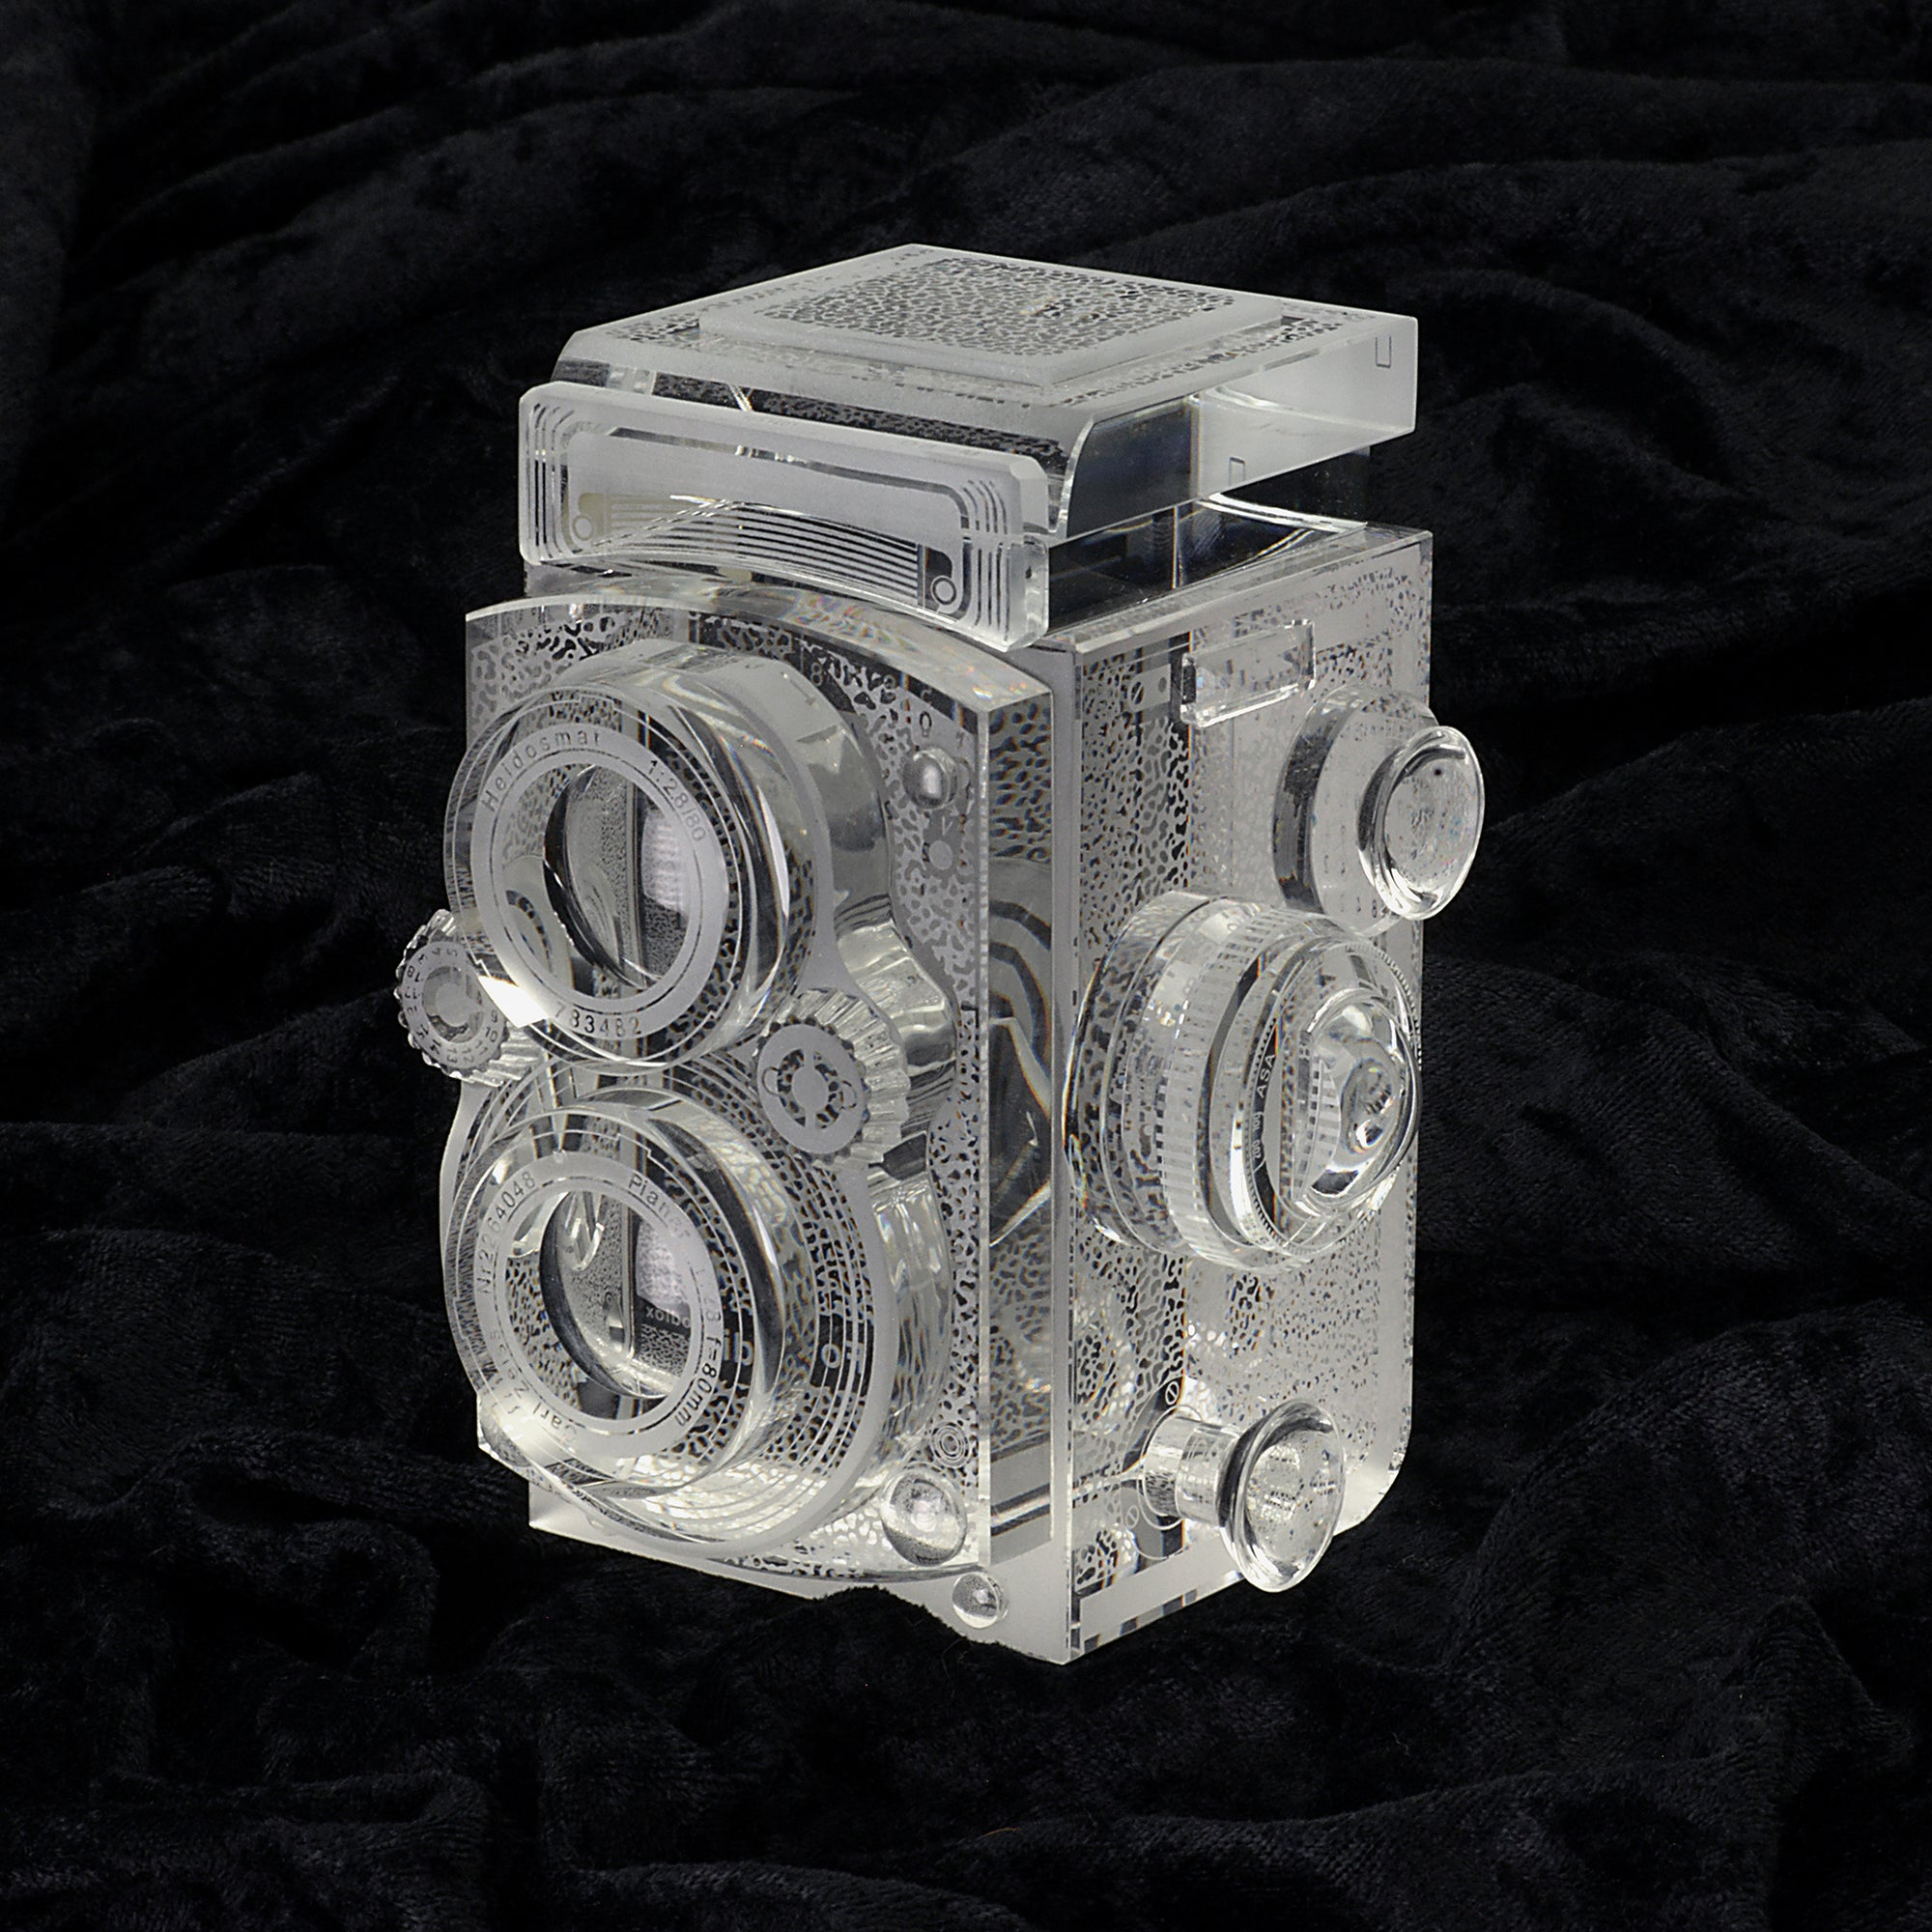 Crystal Glass Replica of the Rolleiflex 2.8 Camera